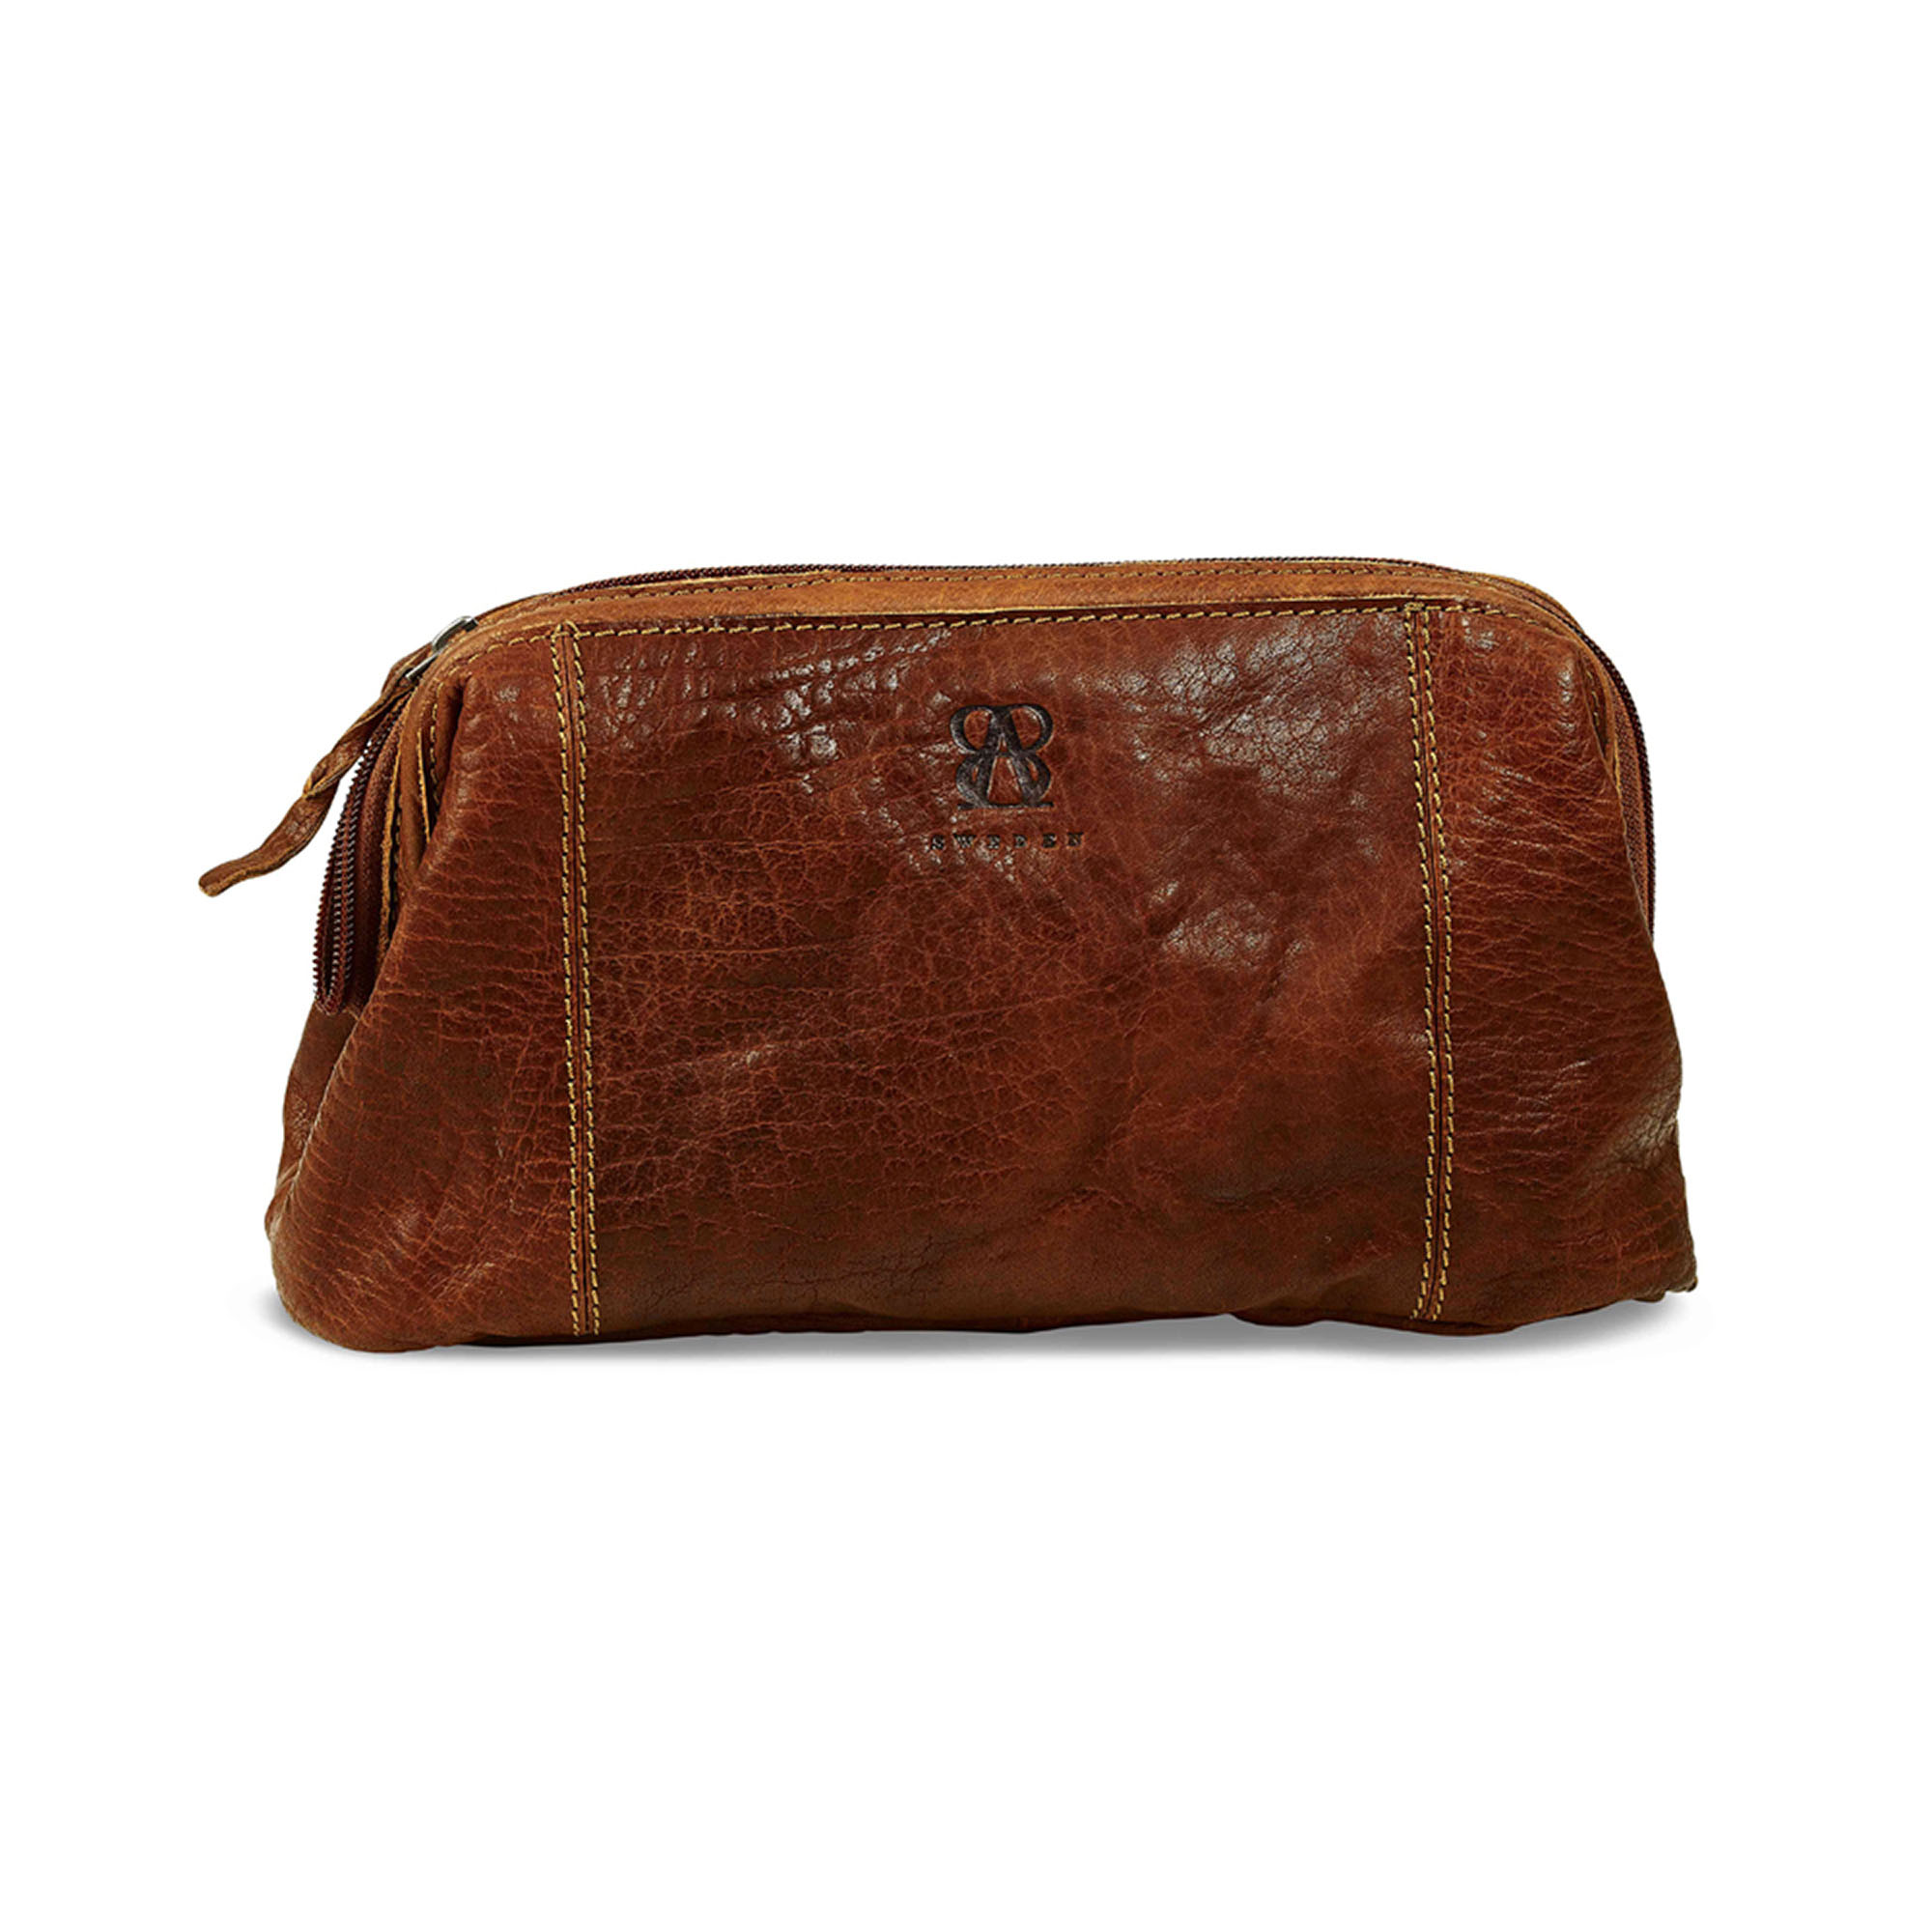 Exclusive toiletry bag in waxed buffalo leather. Lining in cotton, 6 compartments Delivered packed in a fine cloth bag